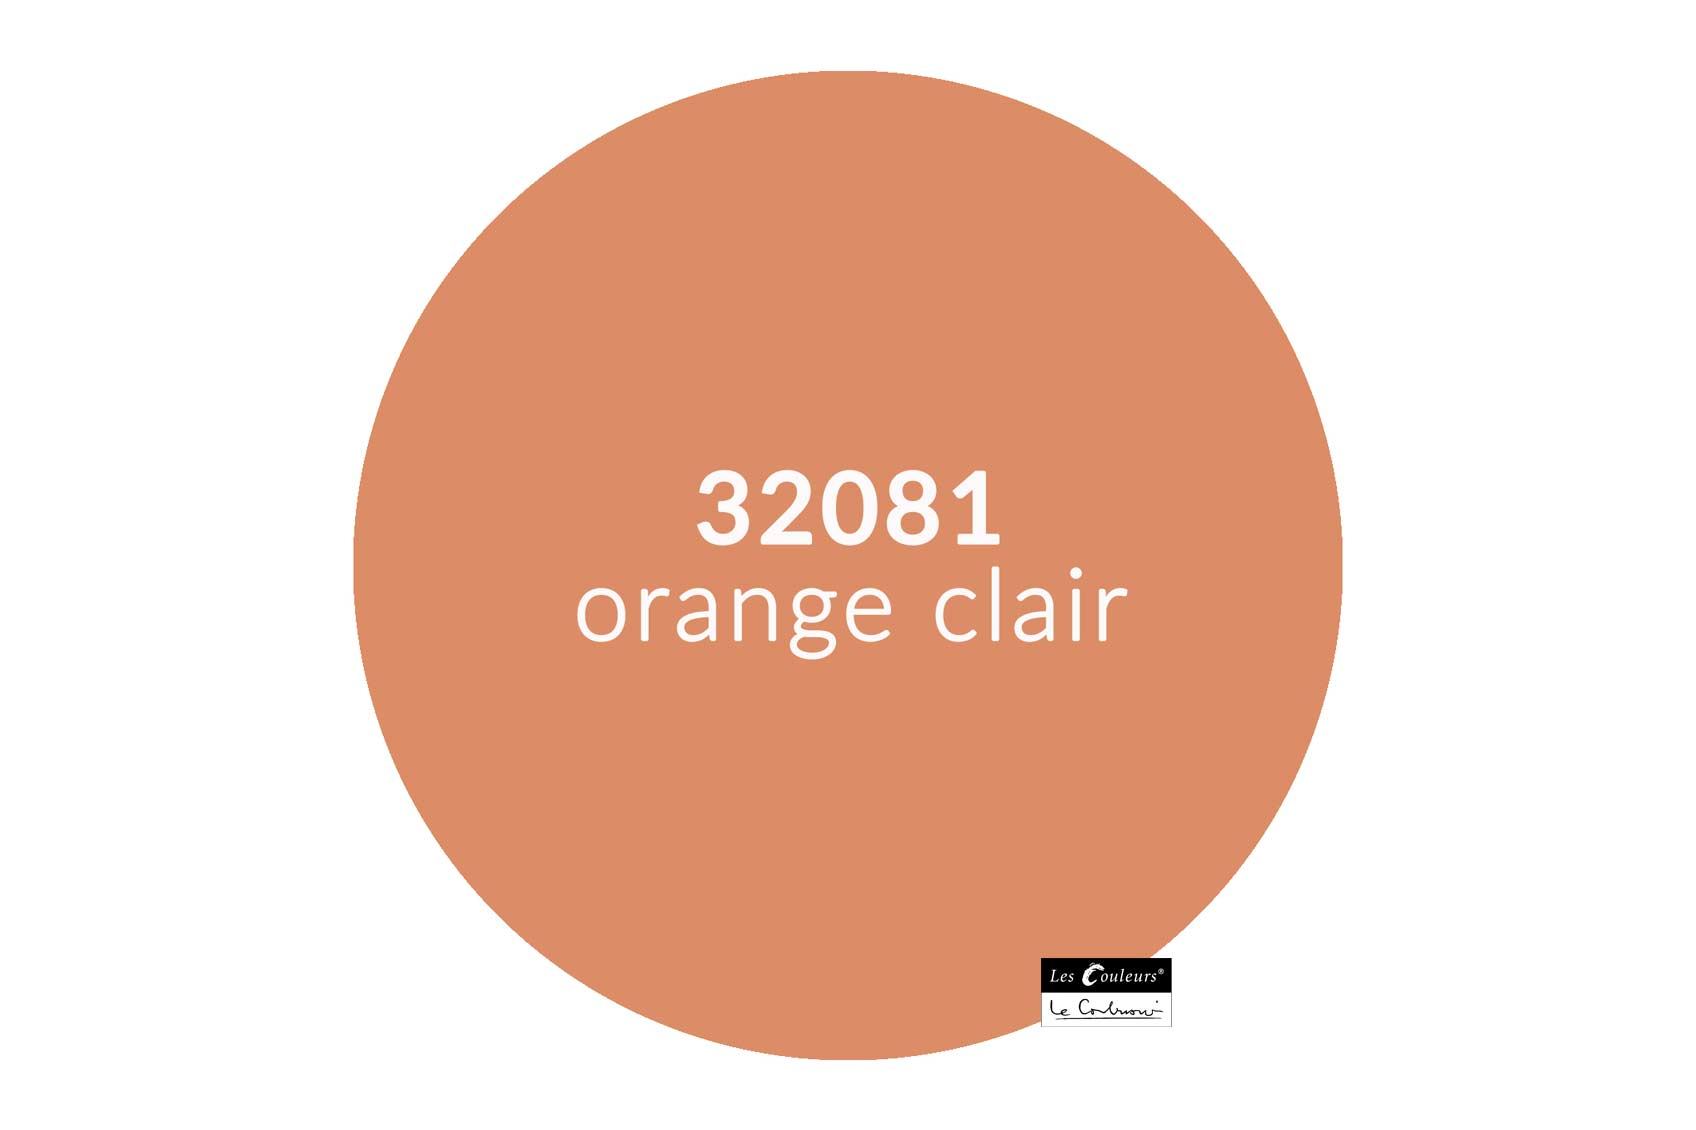 ©Les Couleurs Le Corbusier - 32081 orange clair